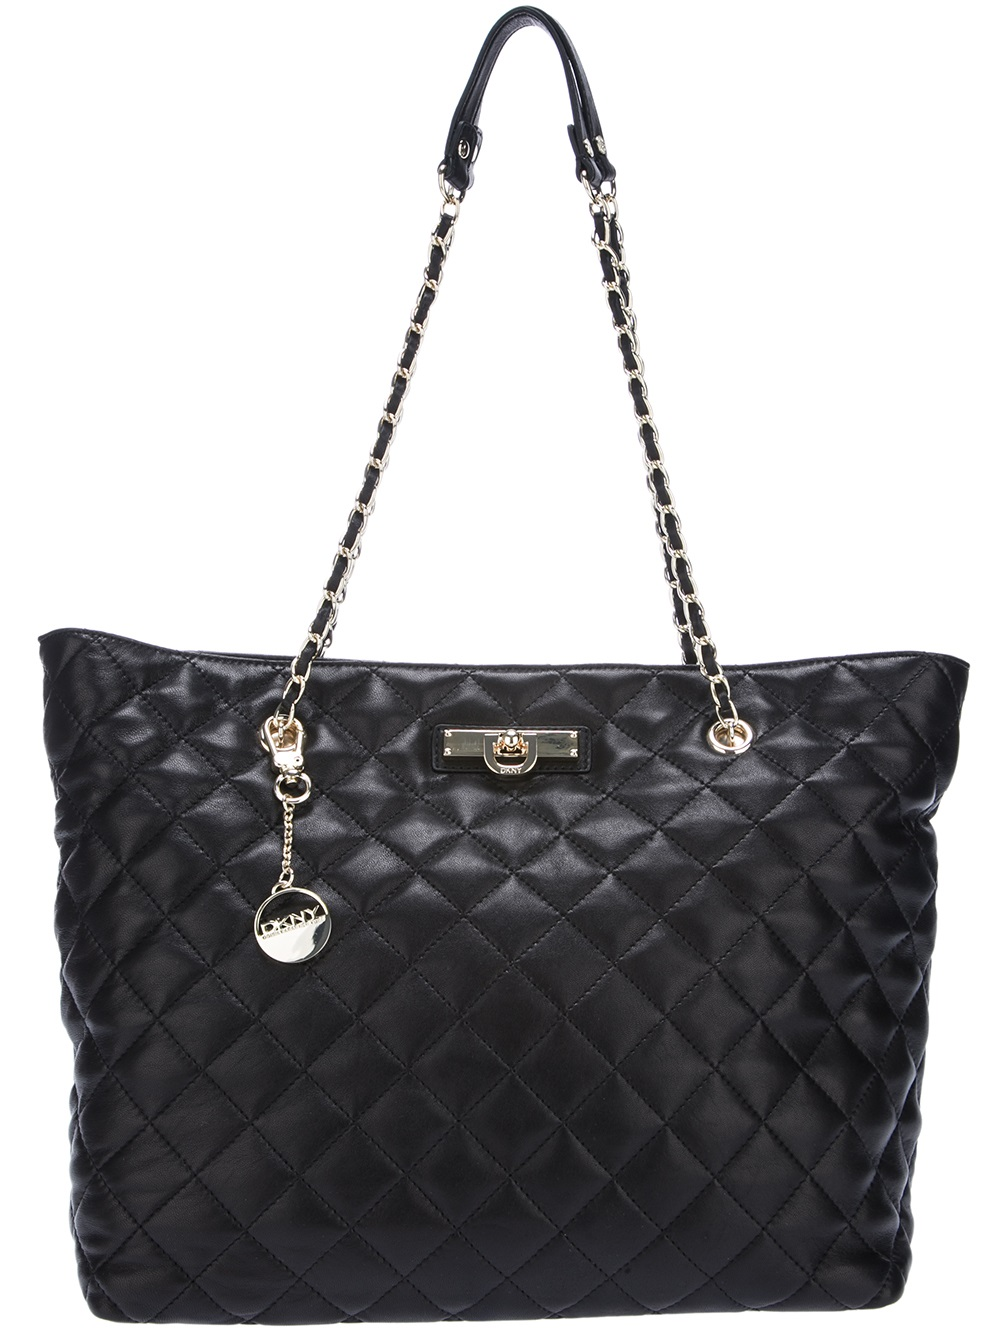 DKNY Quilted Leather Tote in Black Lyst